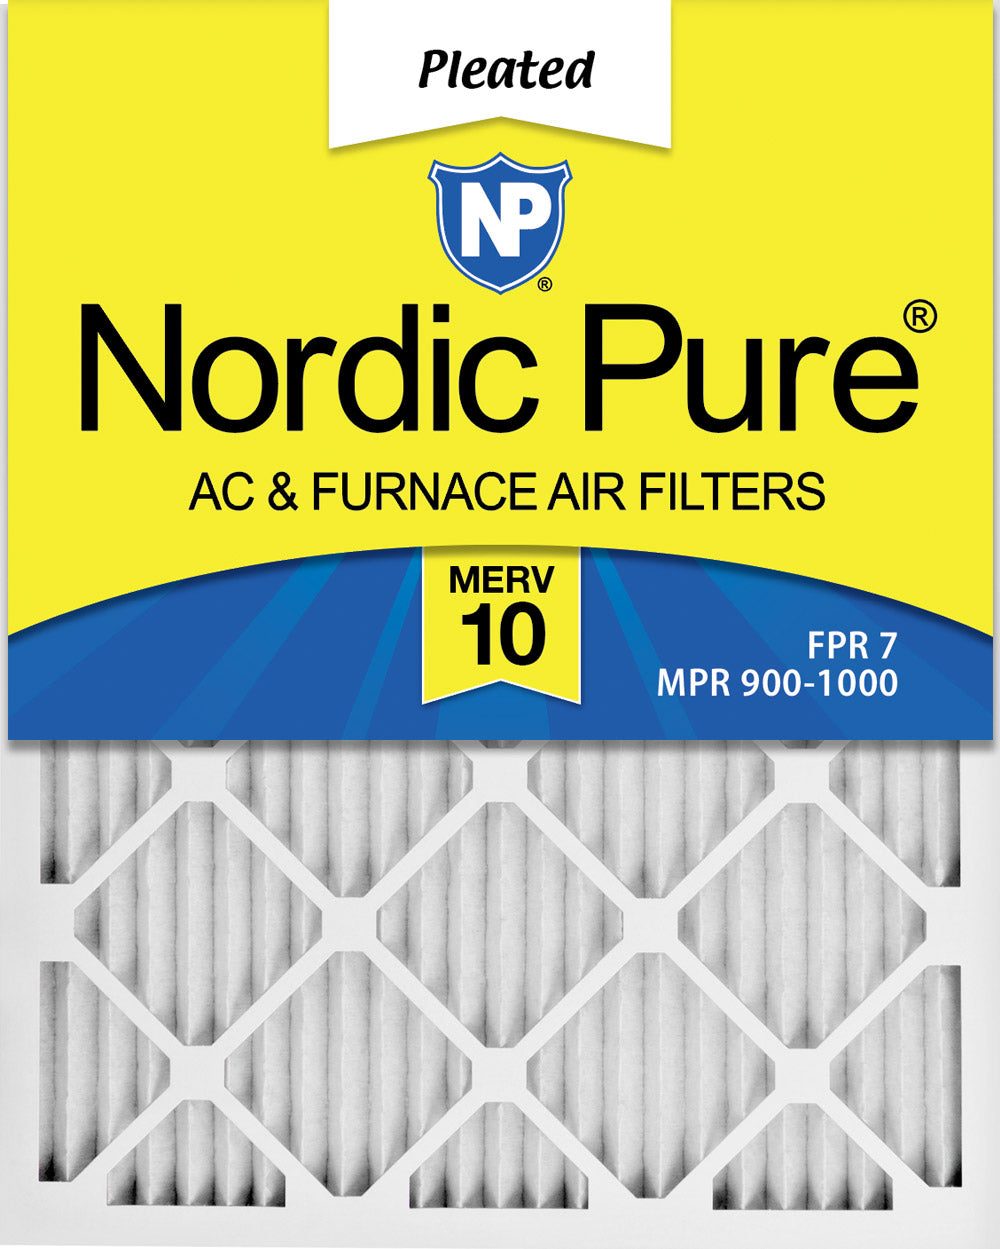 16x20x1 Pleated MERV 10 Air Filters 6 Pack